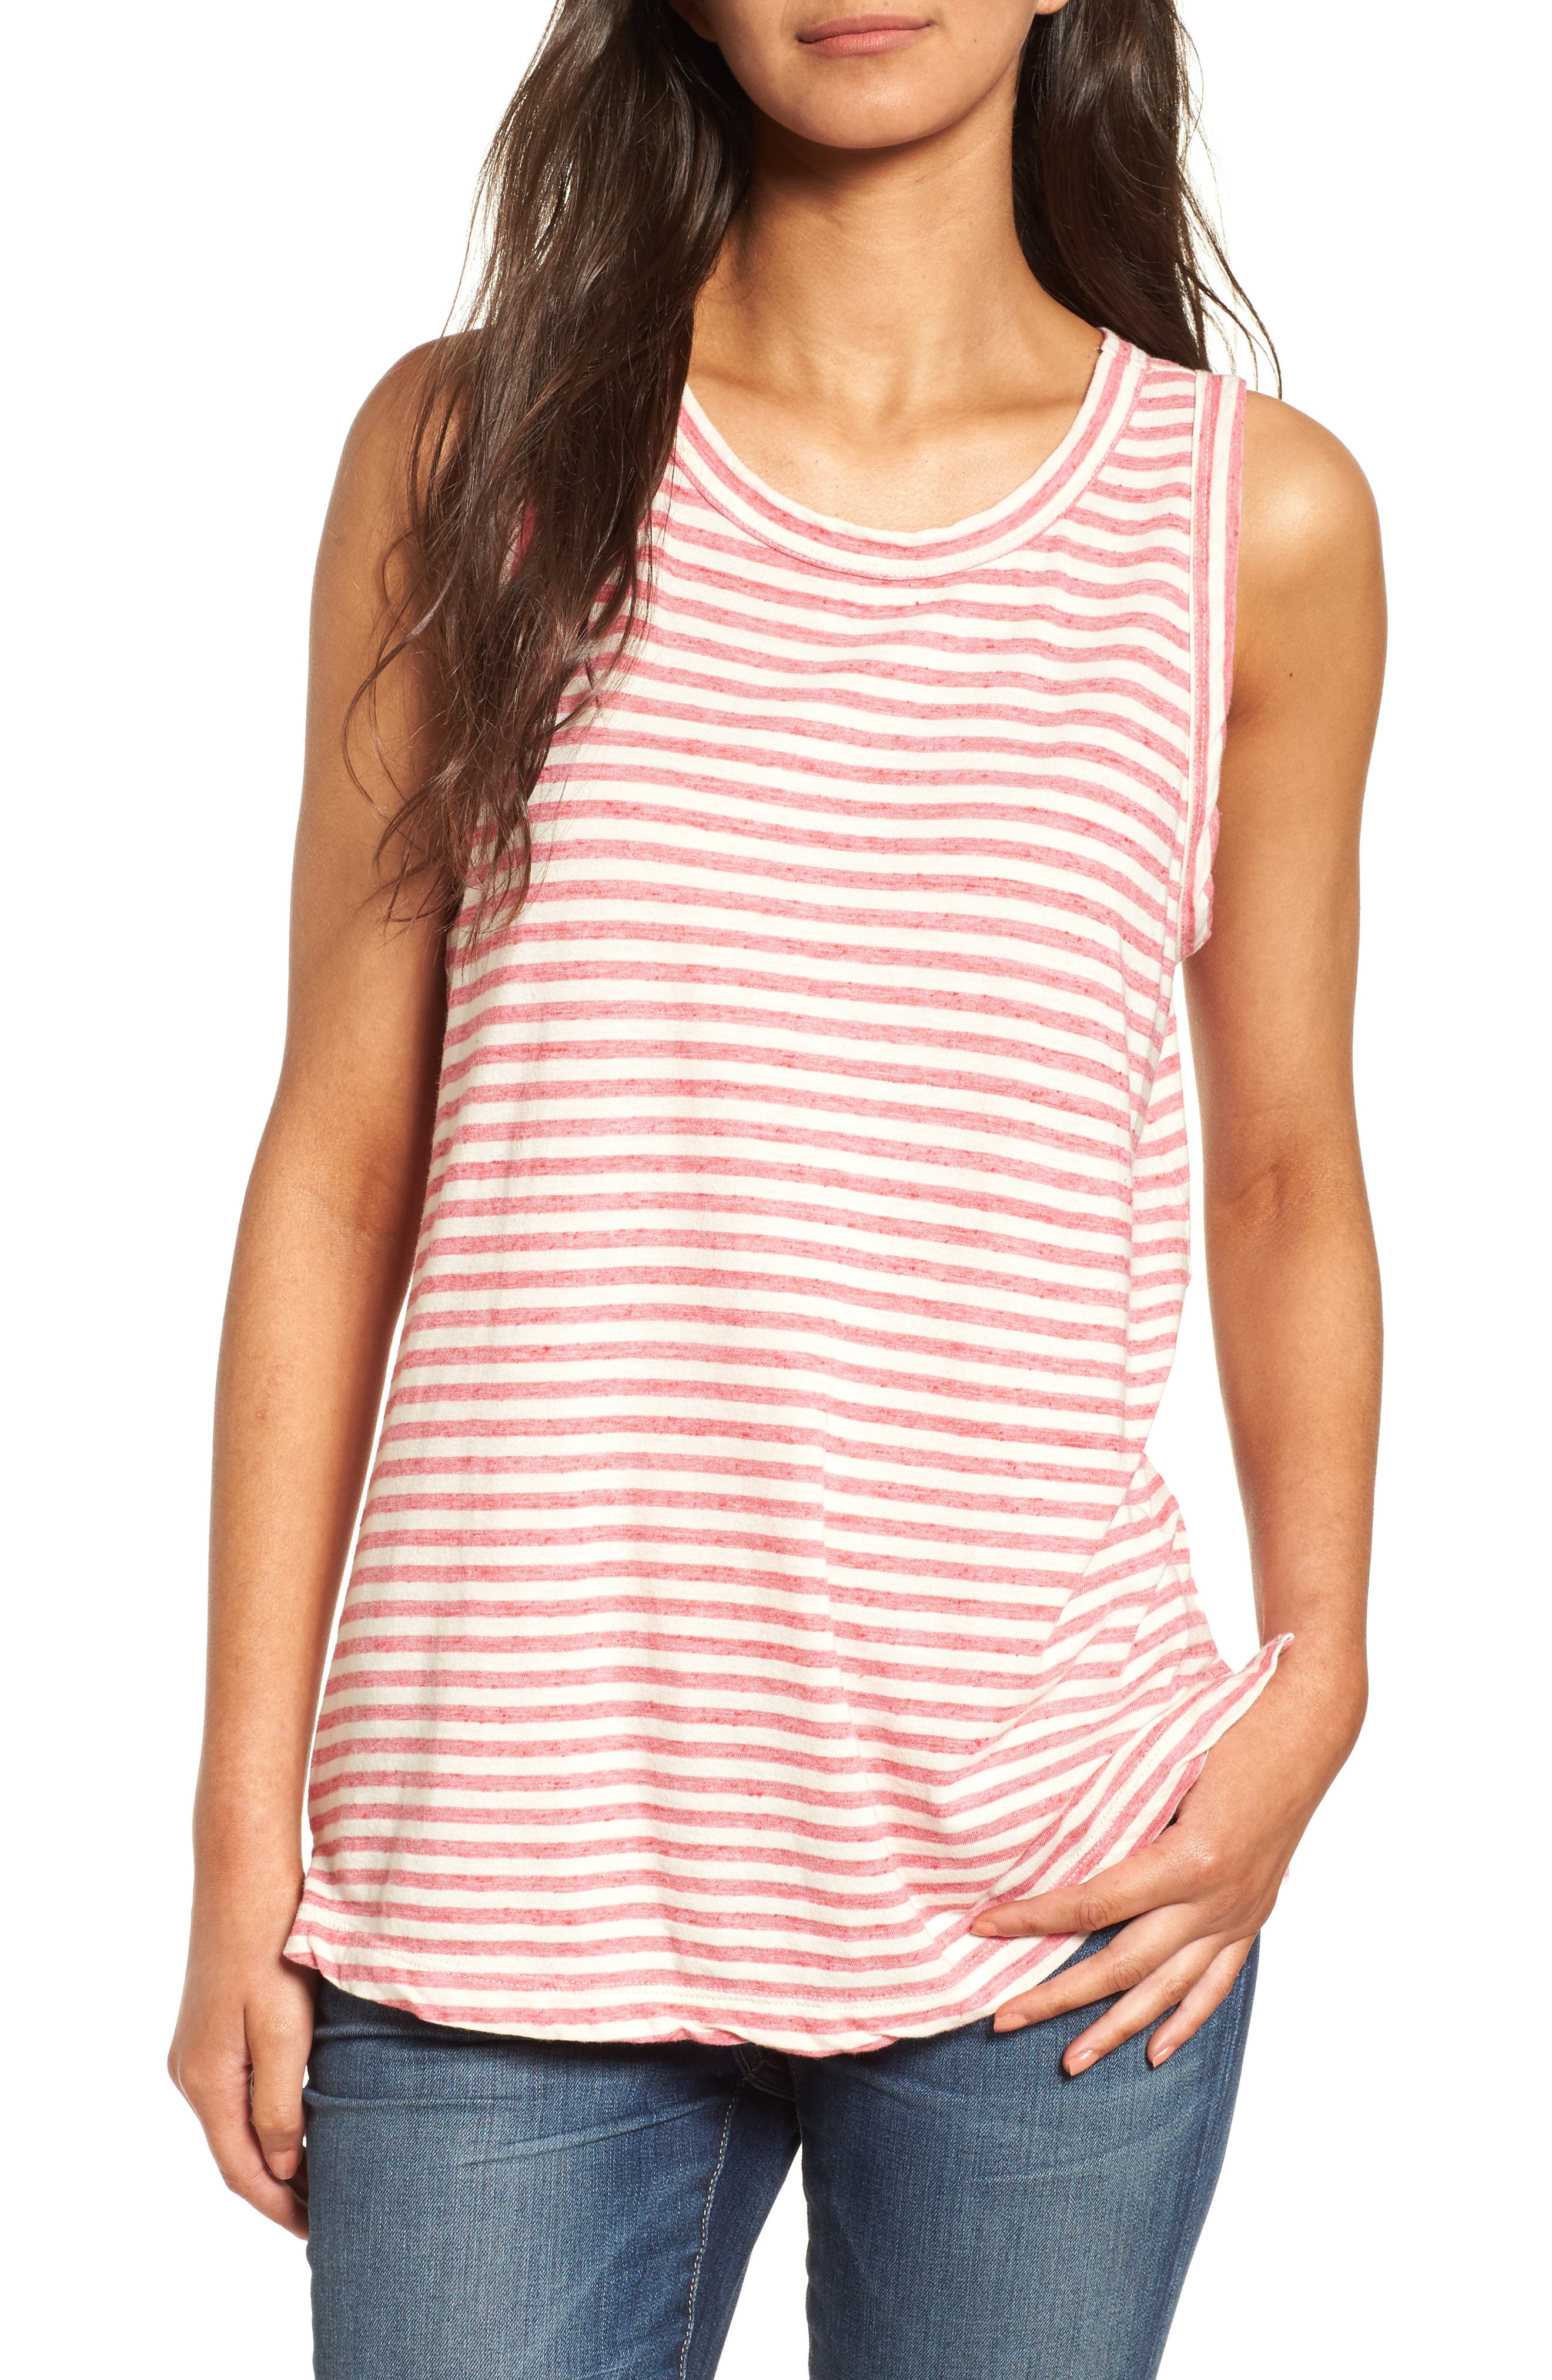 Alternate Image 1 Selected - Current/Elliott The Muscle Tee Stripe Tank